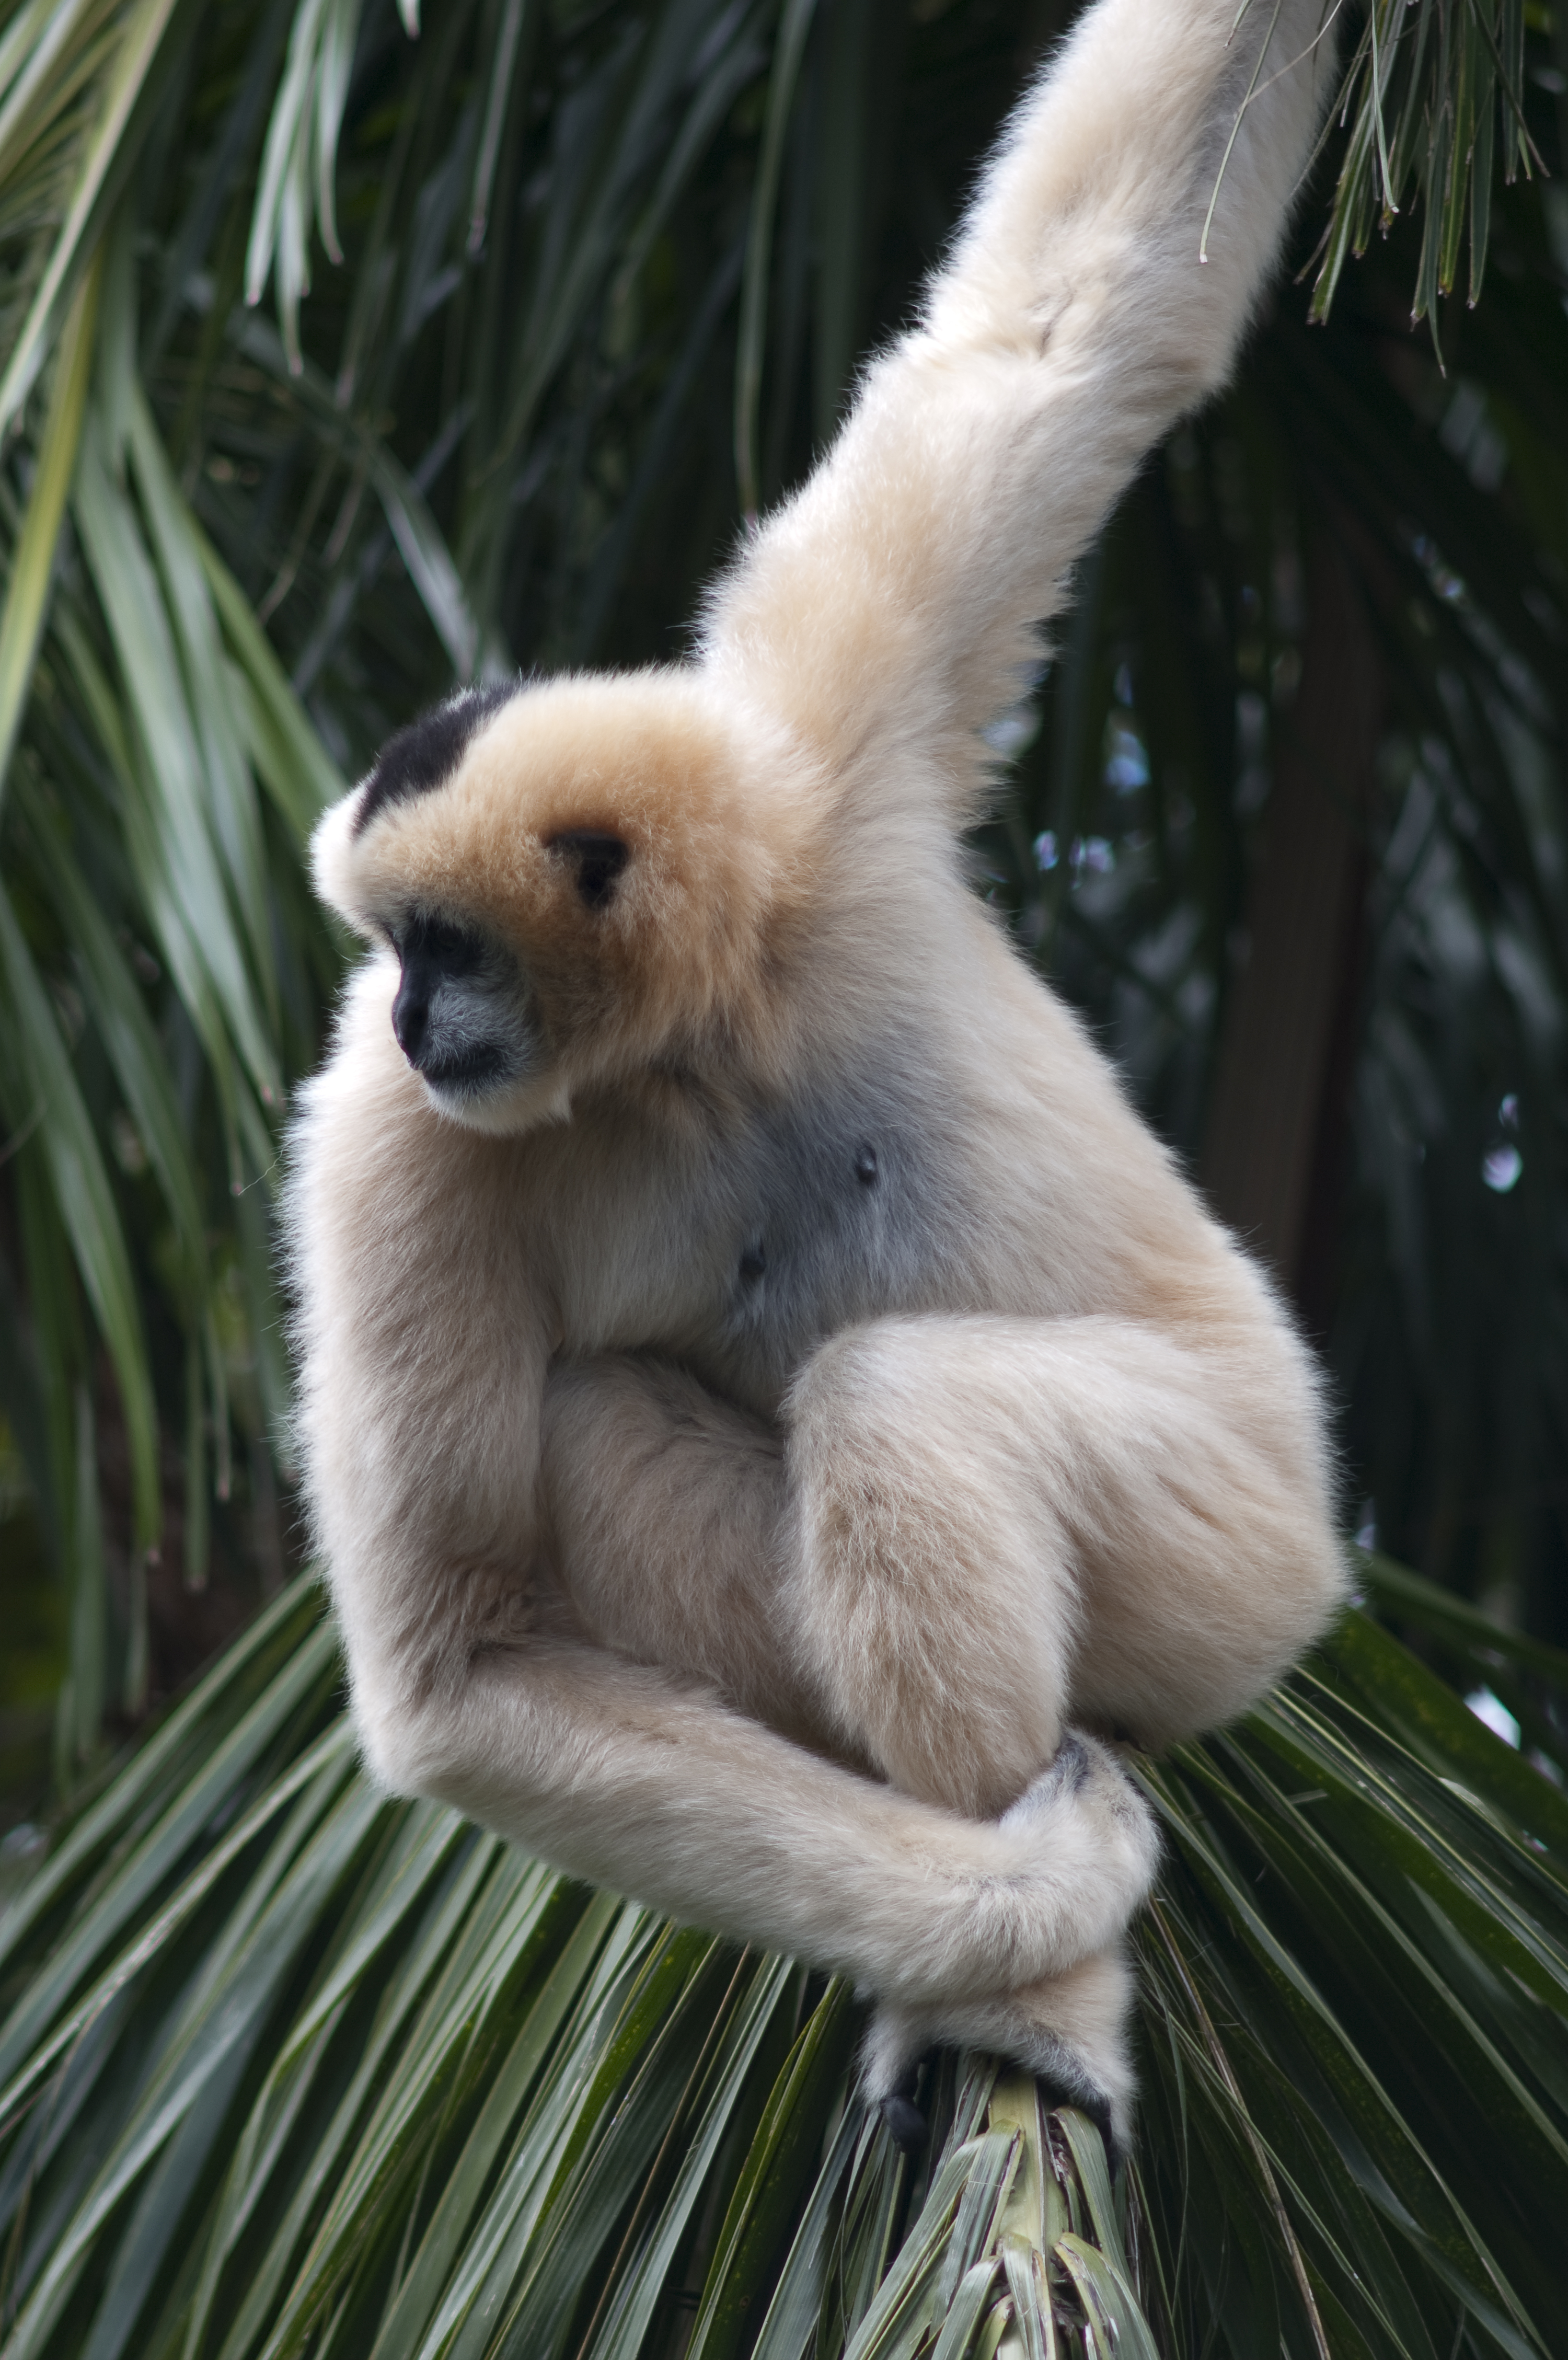 https://upload.wikimedia.org/wikipedia/commons/d/d0/Female_White-Cheeked_Gibbon.jpg